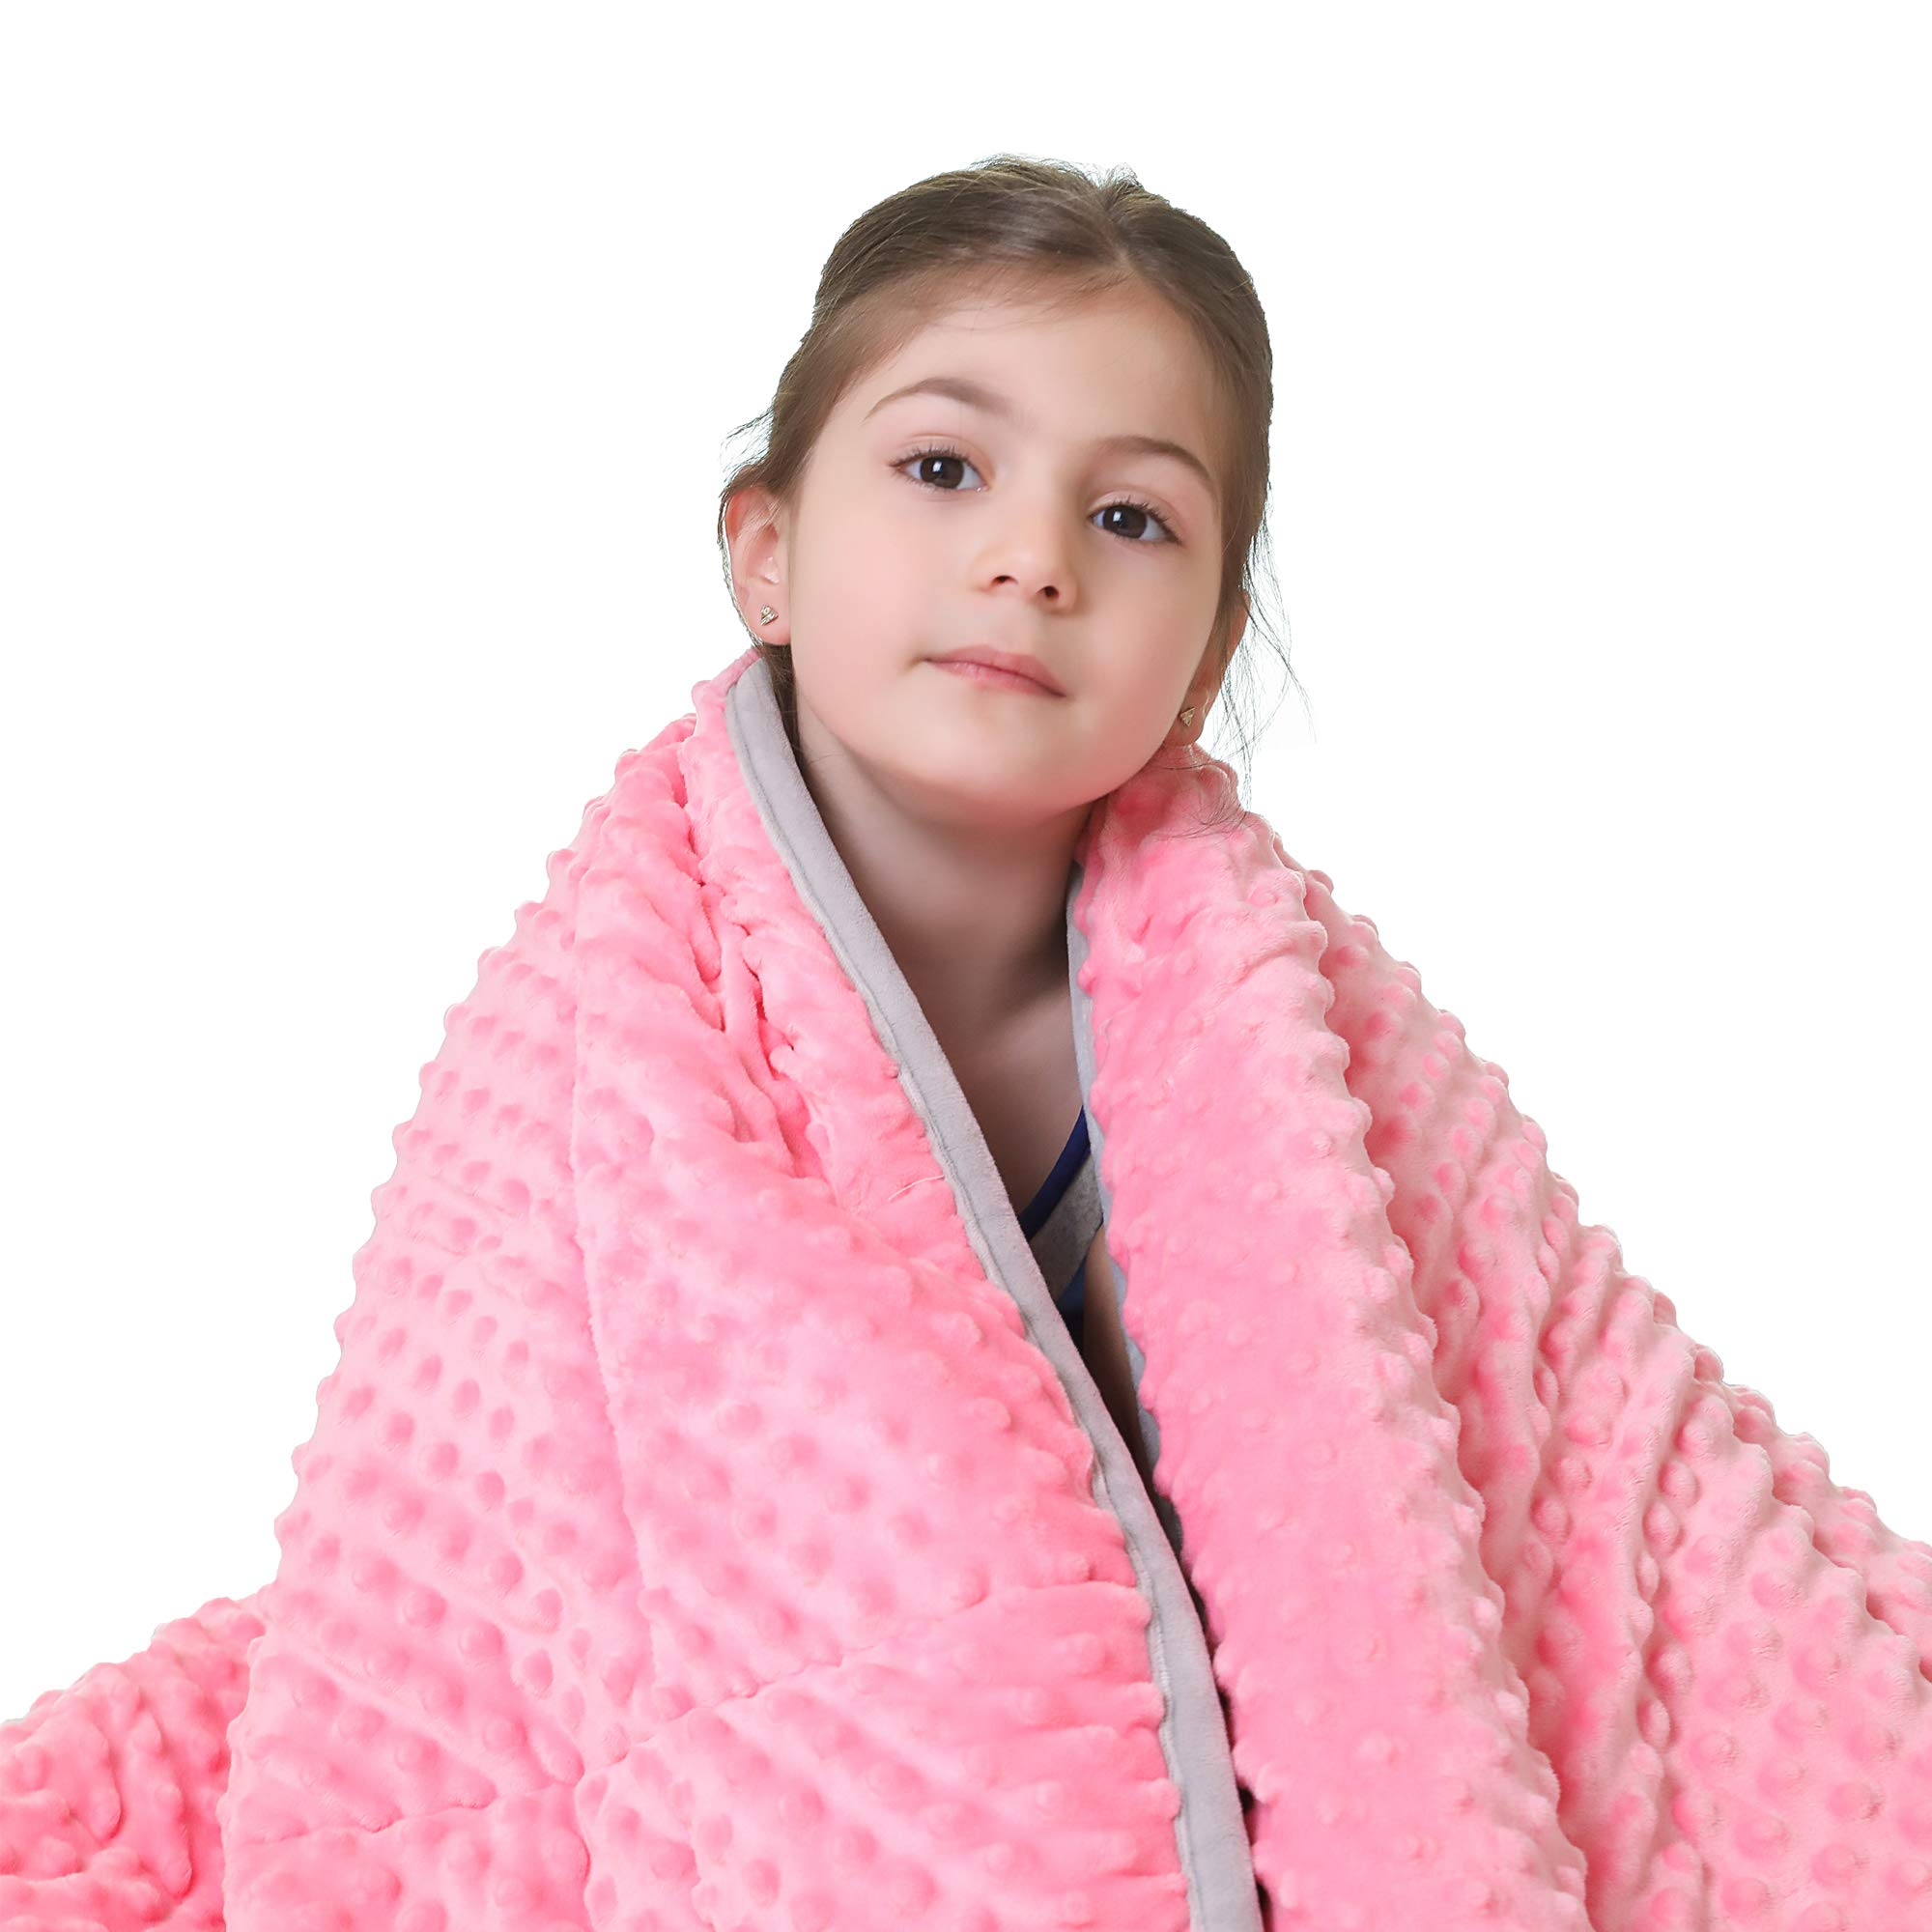 JHMENG Weighted Blanket for Kids(5lbs for 30-70 lbs) 2.0Heavy Blanket Soft Minky with Nontoxic Glass Beads for Calm Sleeping(Pink-Minky Cover,36''x48'' 5lbs)